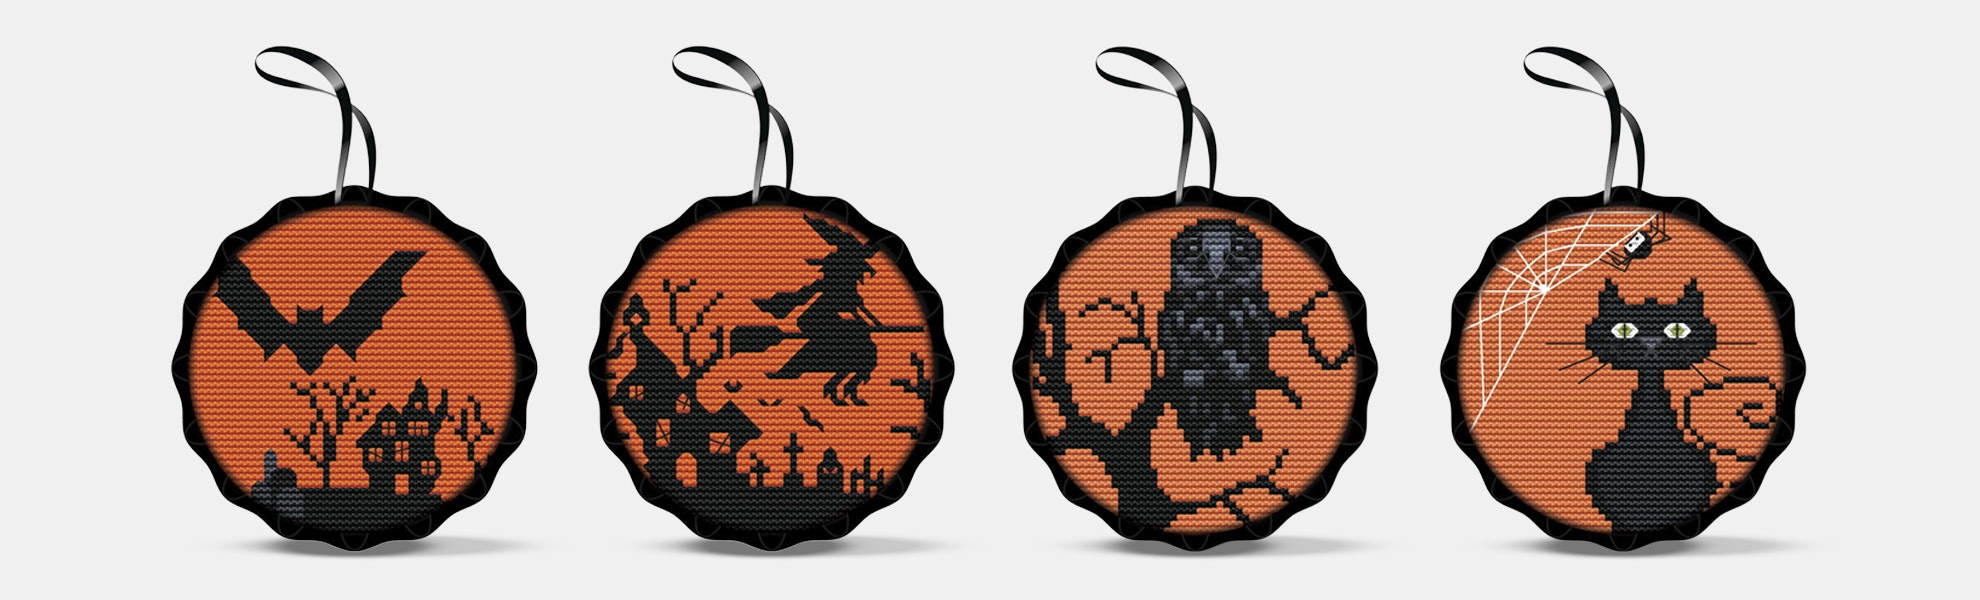 Spooky Cross-Stitch Kits (4-Pack)